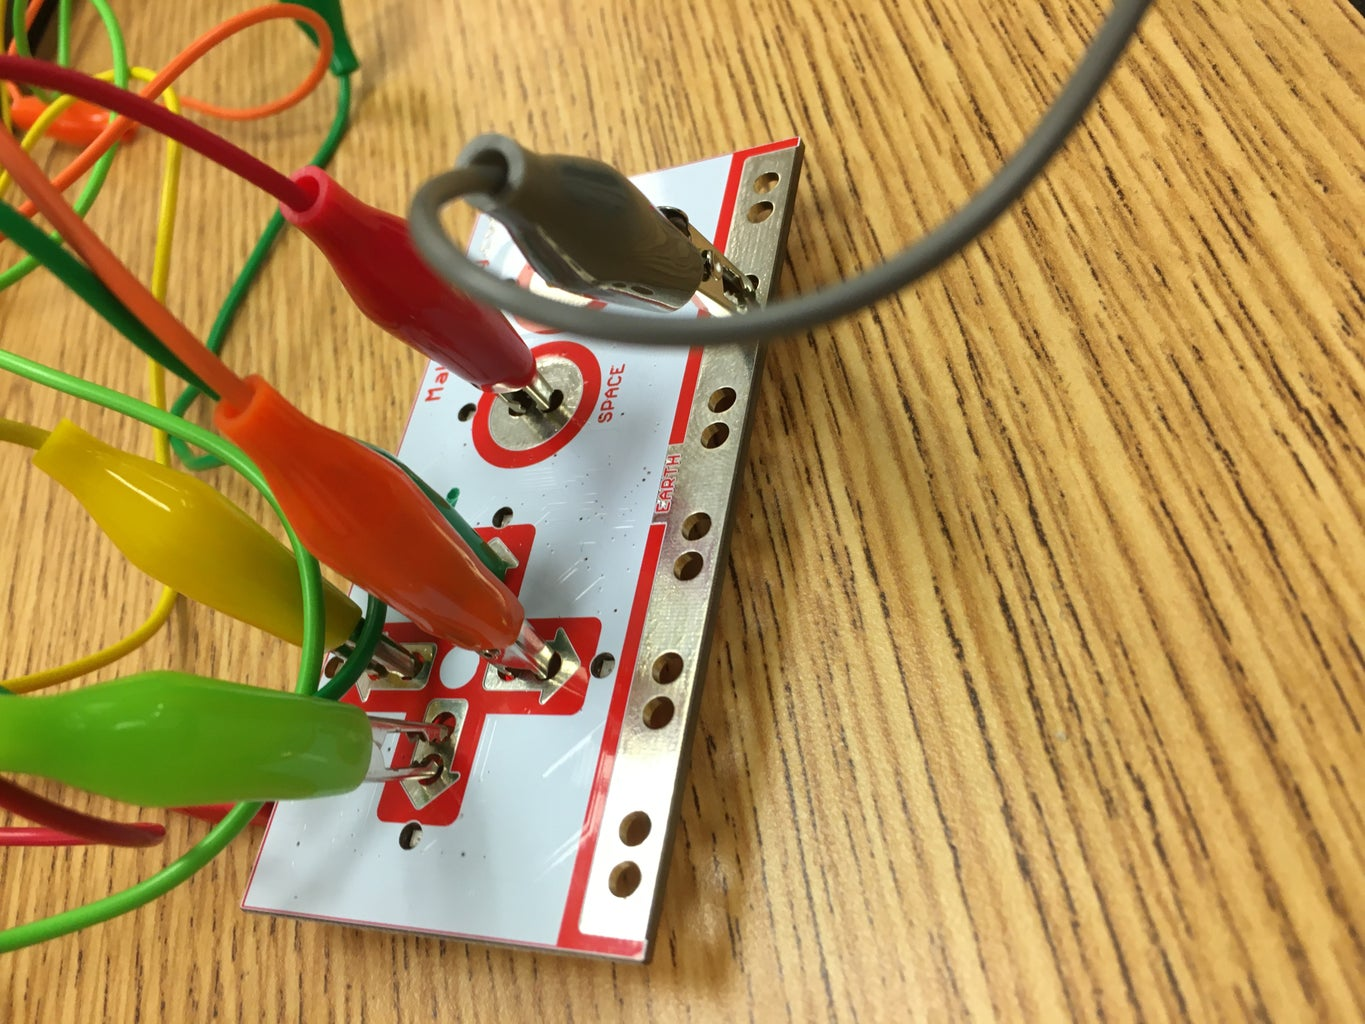 The Setup for Makey Makey Part 1